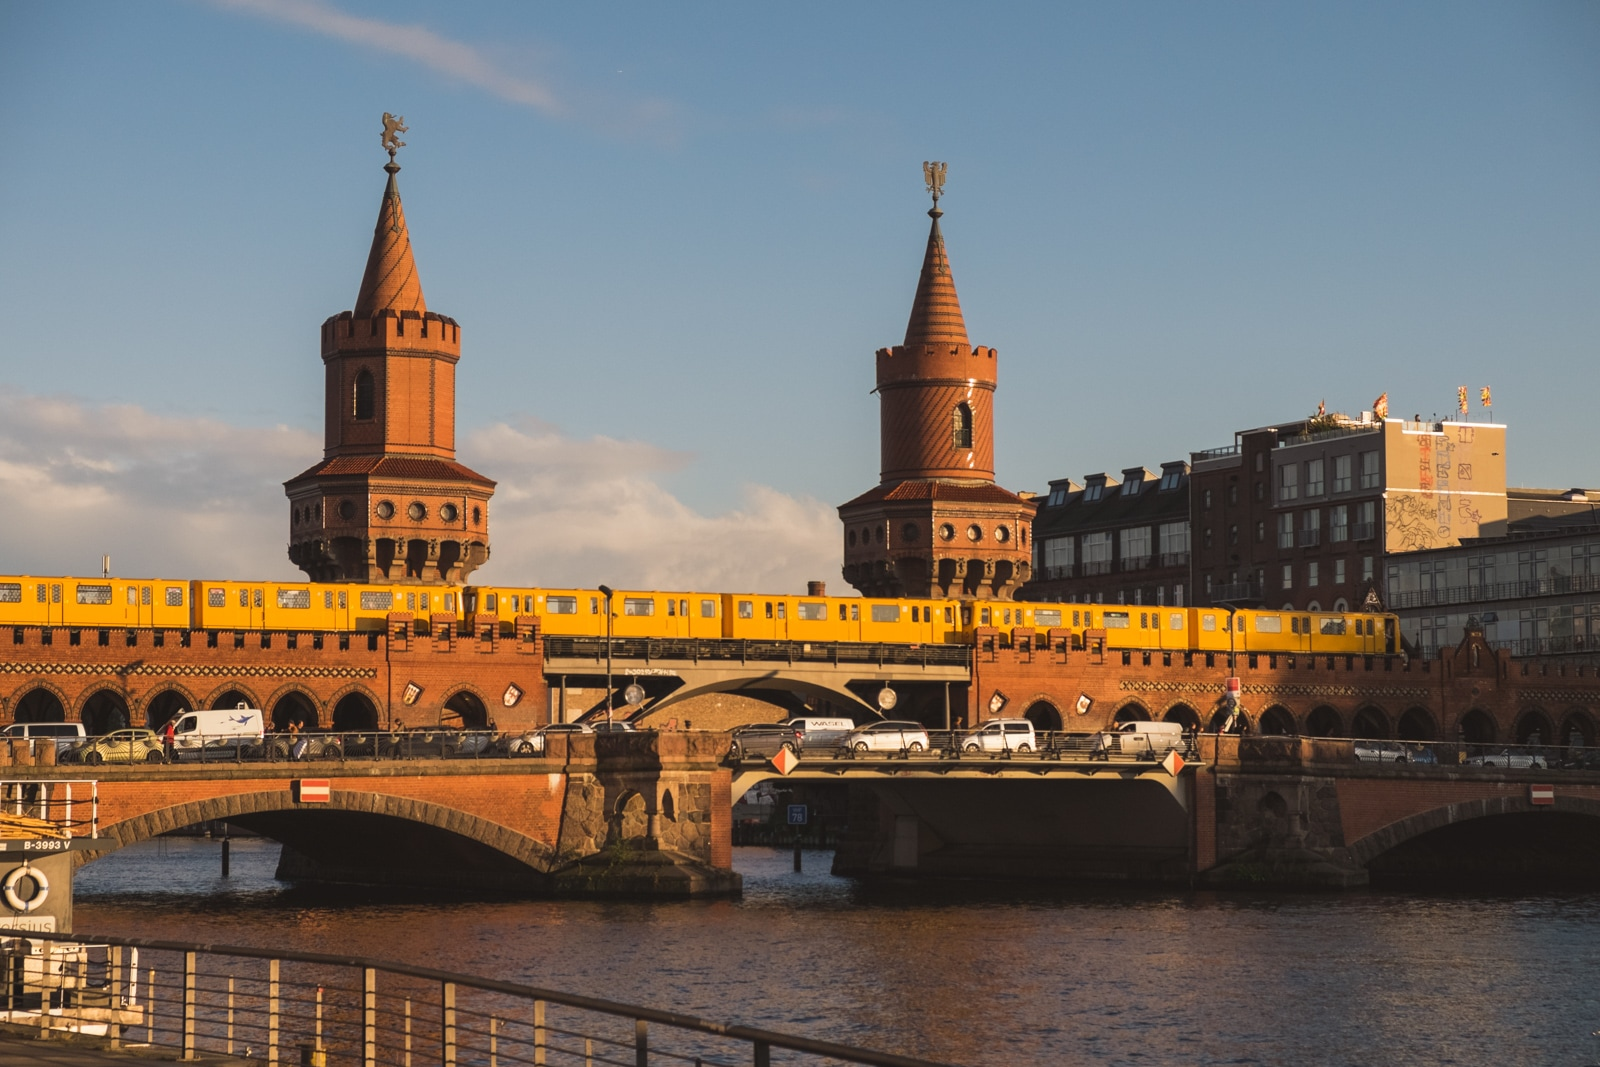 Oberbaum Bridge sobre el Río Spree en Berlin